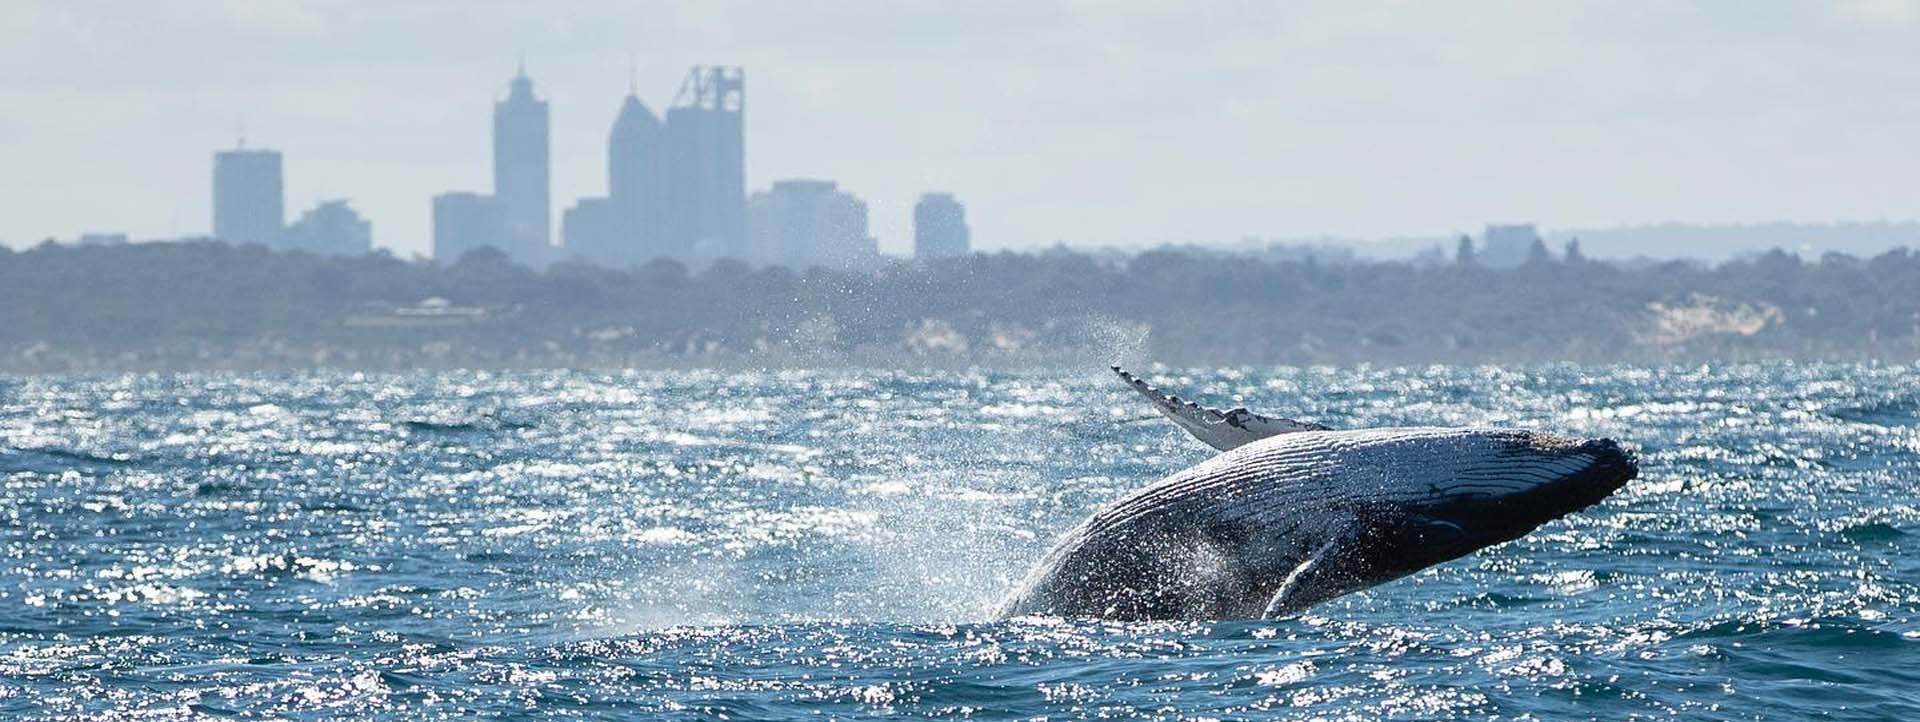 WHALE BREACHING Perth WA city silhouette